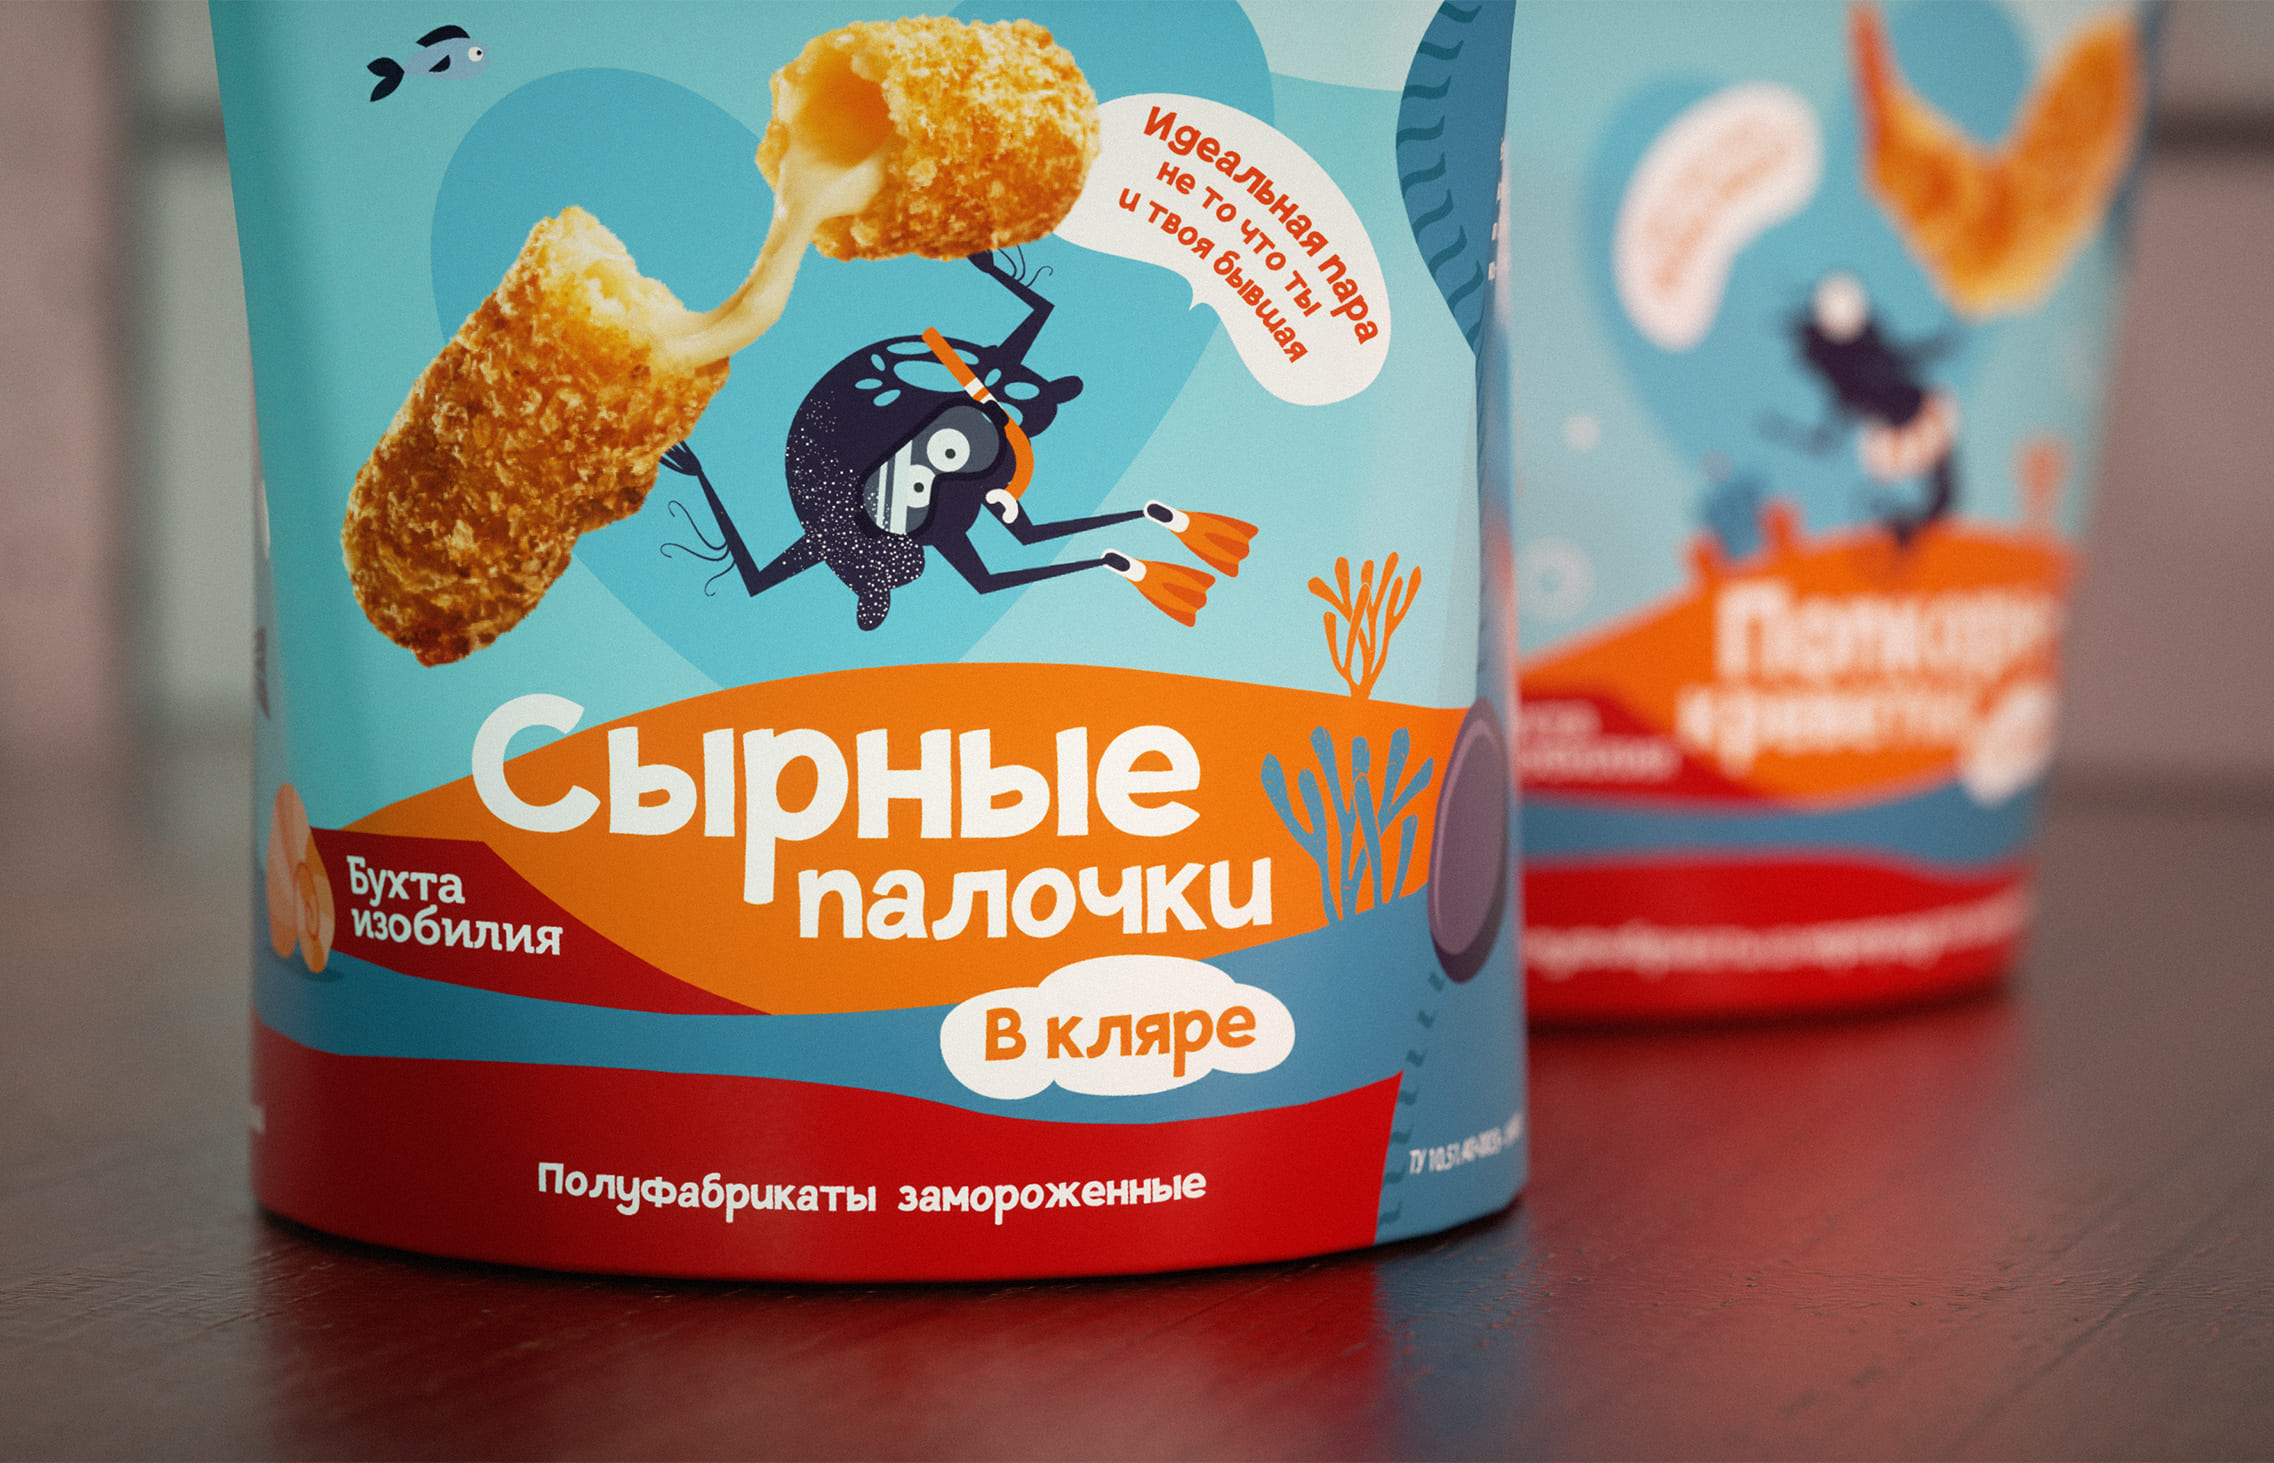 Packaging Design, Product Photoshoot and Slogans for a New Snacks Line